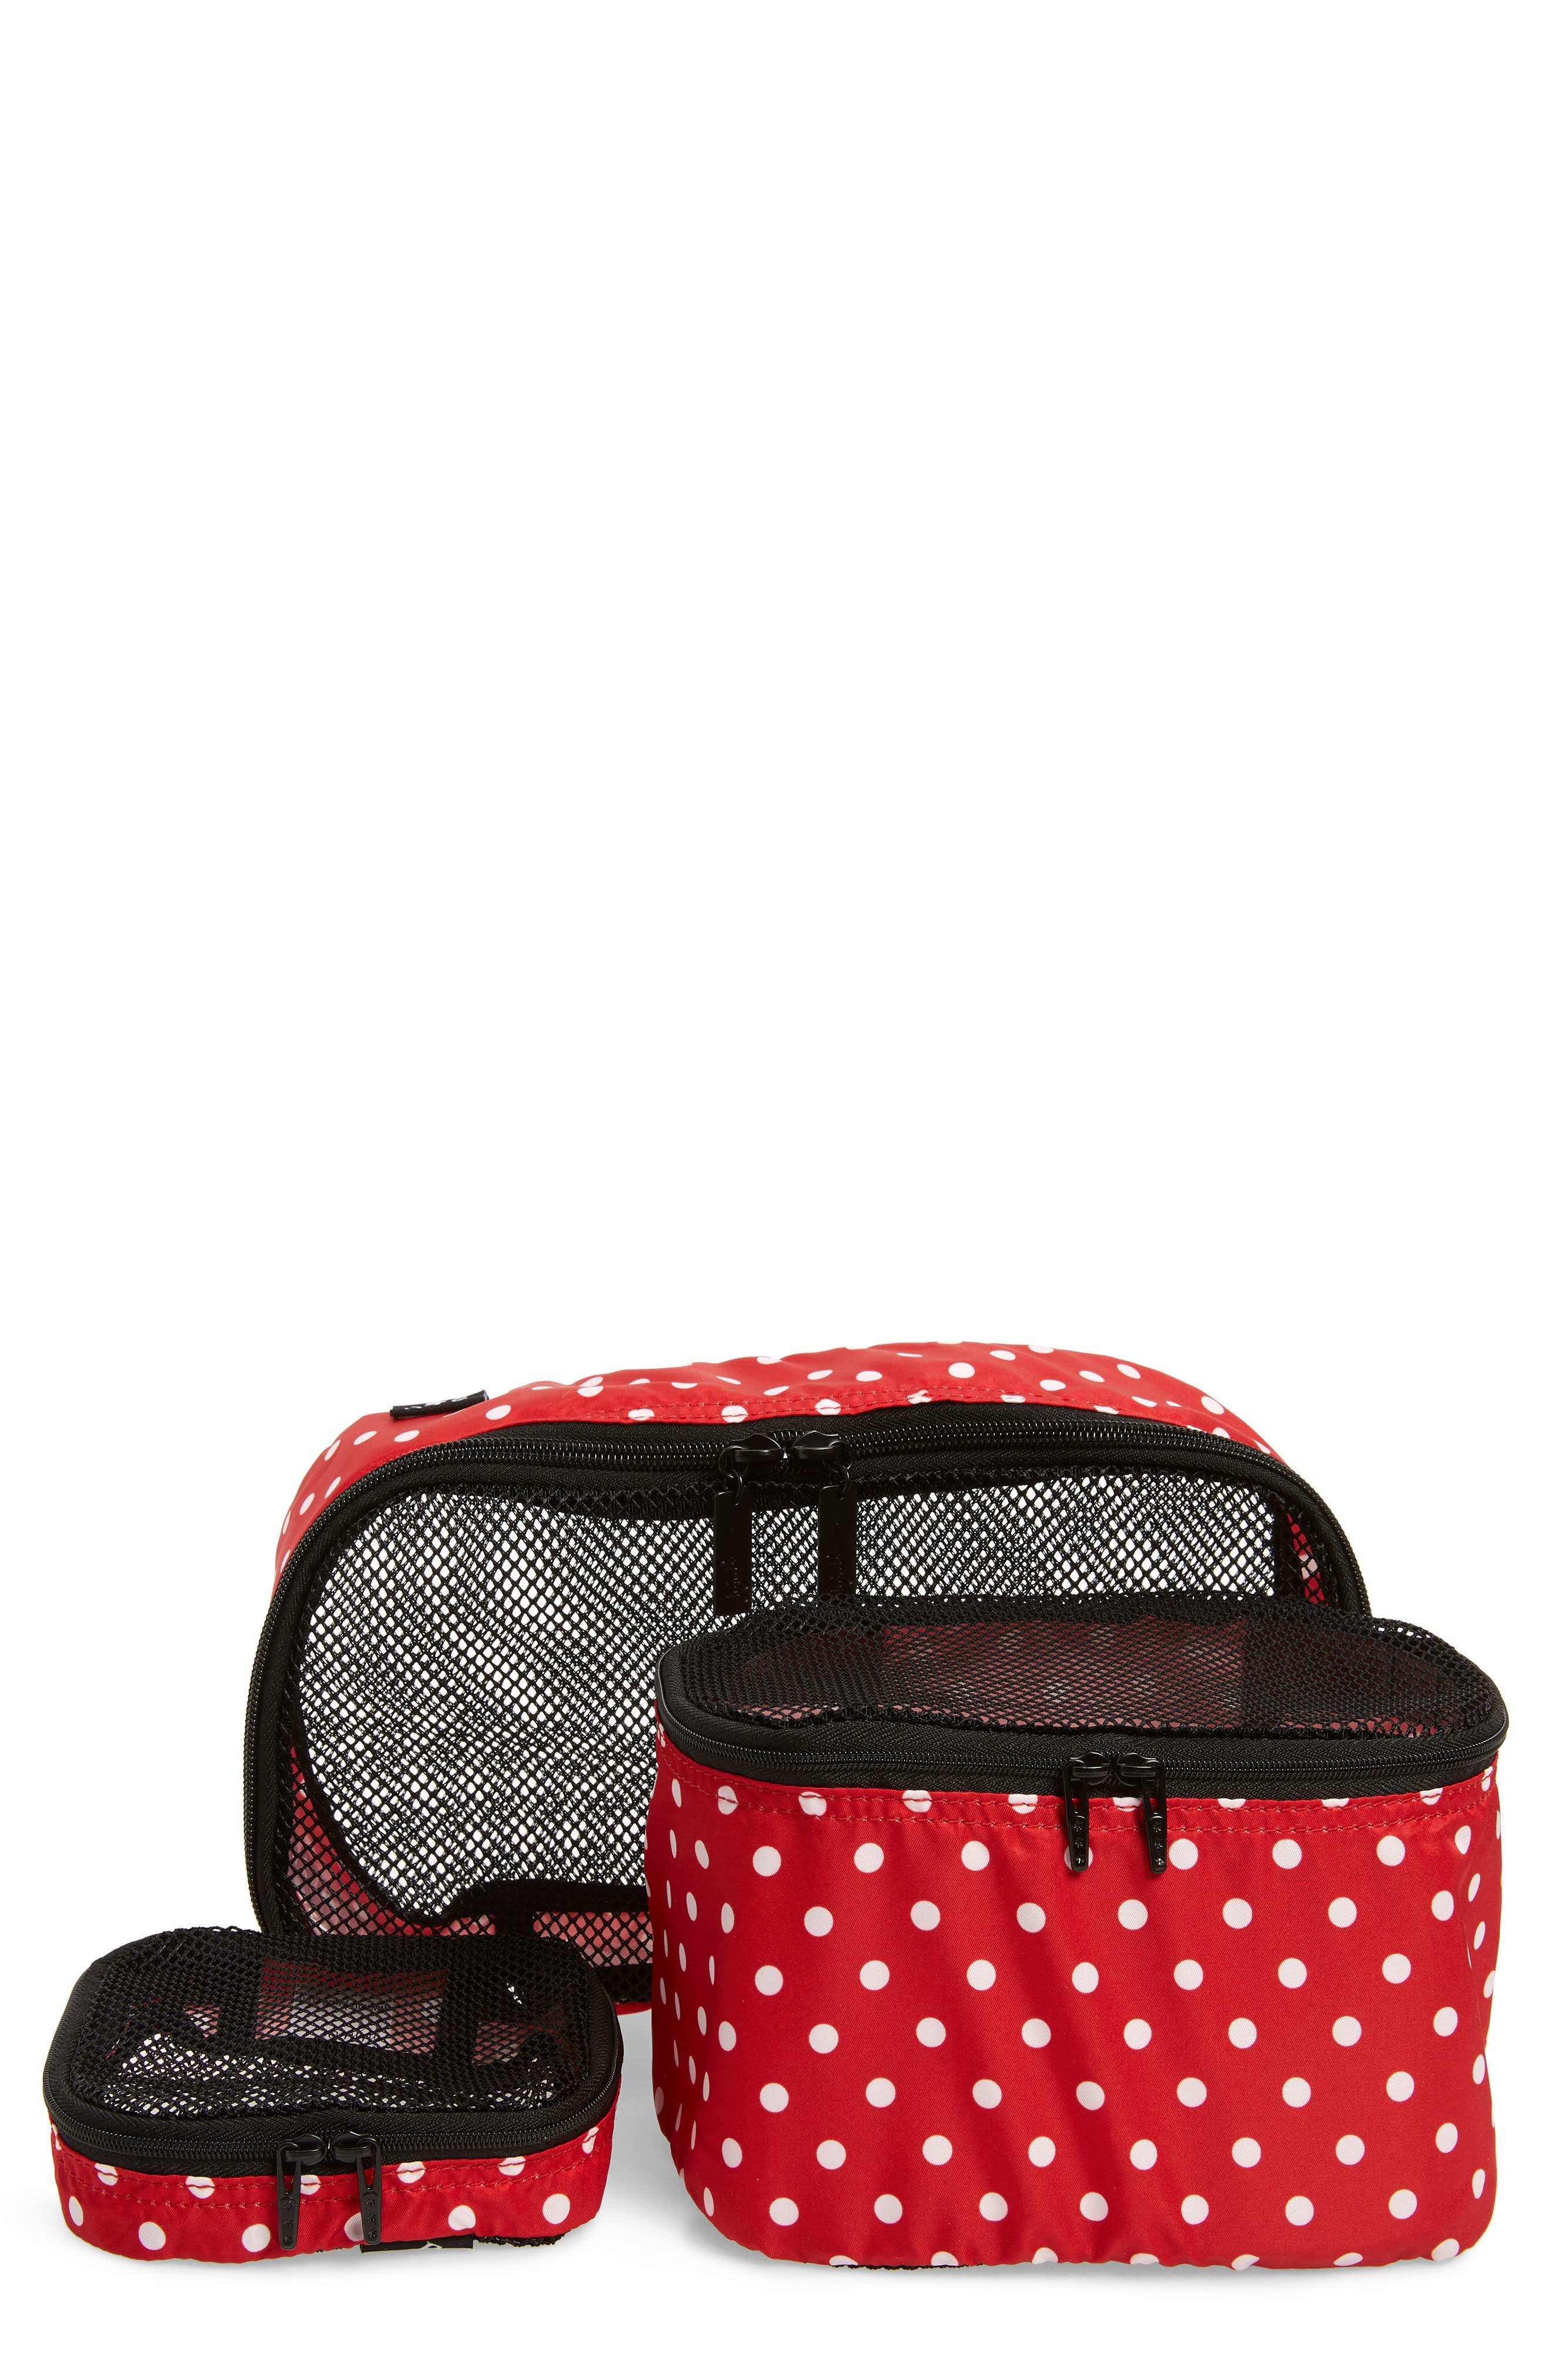 Be Organized Set of 3 Top Zip Cases,                             Main thumbnail 1, color,                             Black Ruby